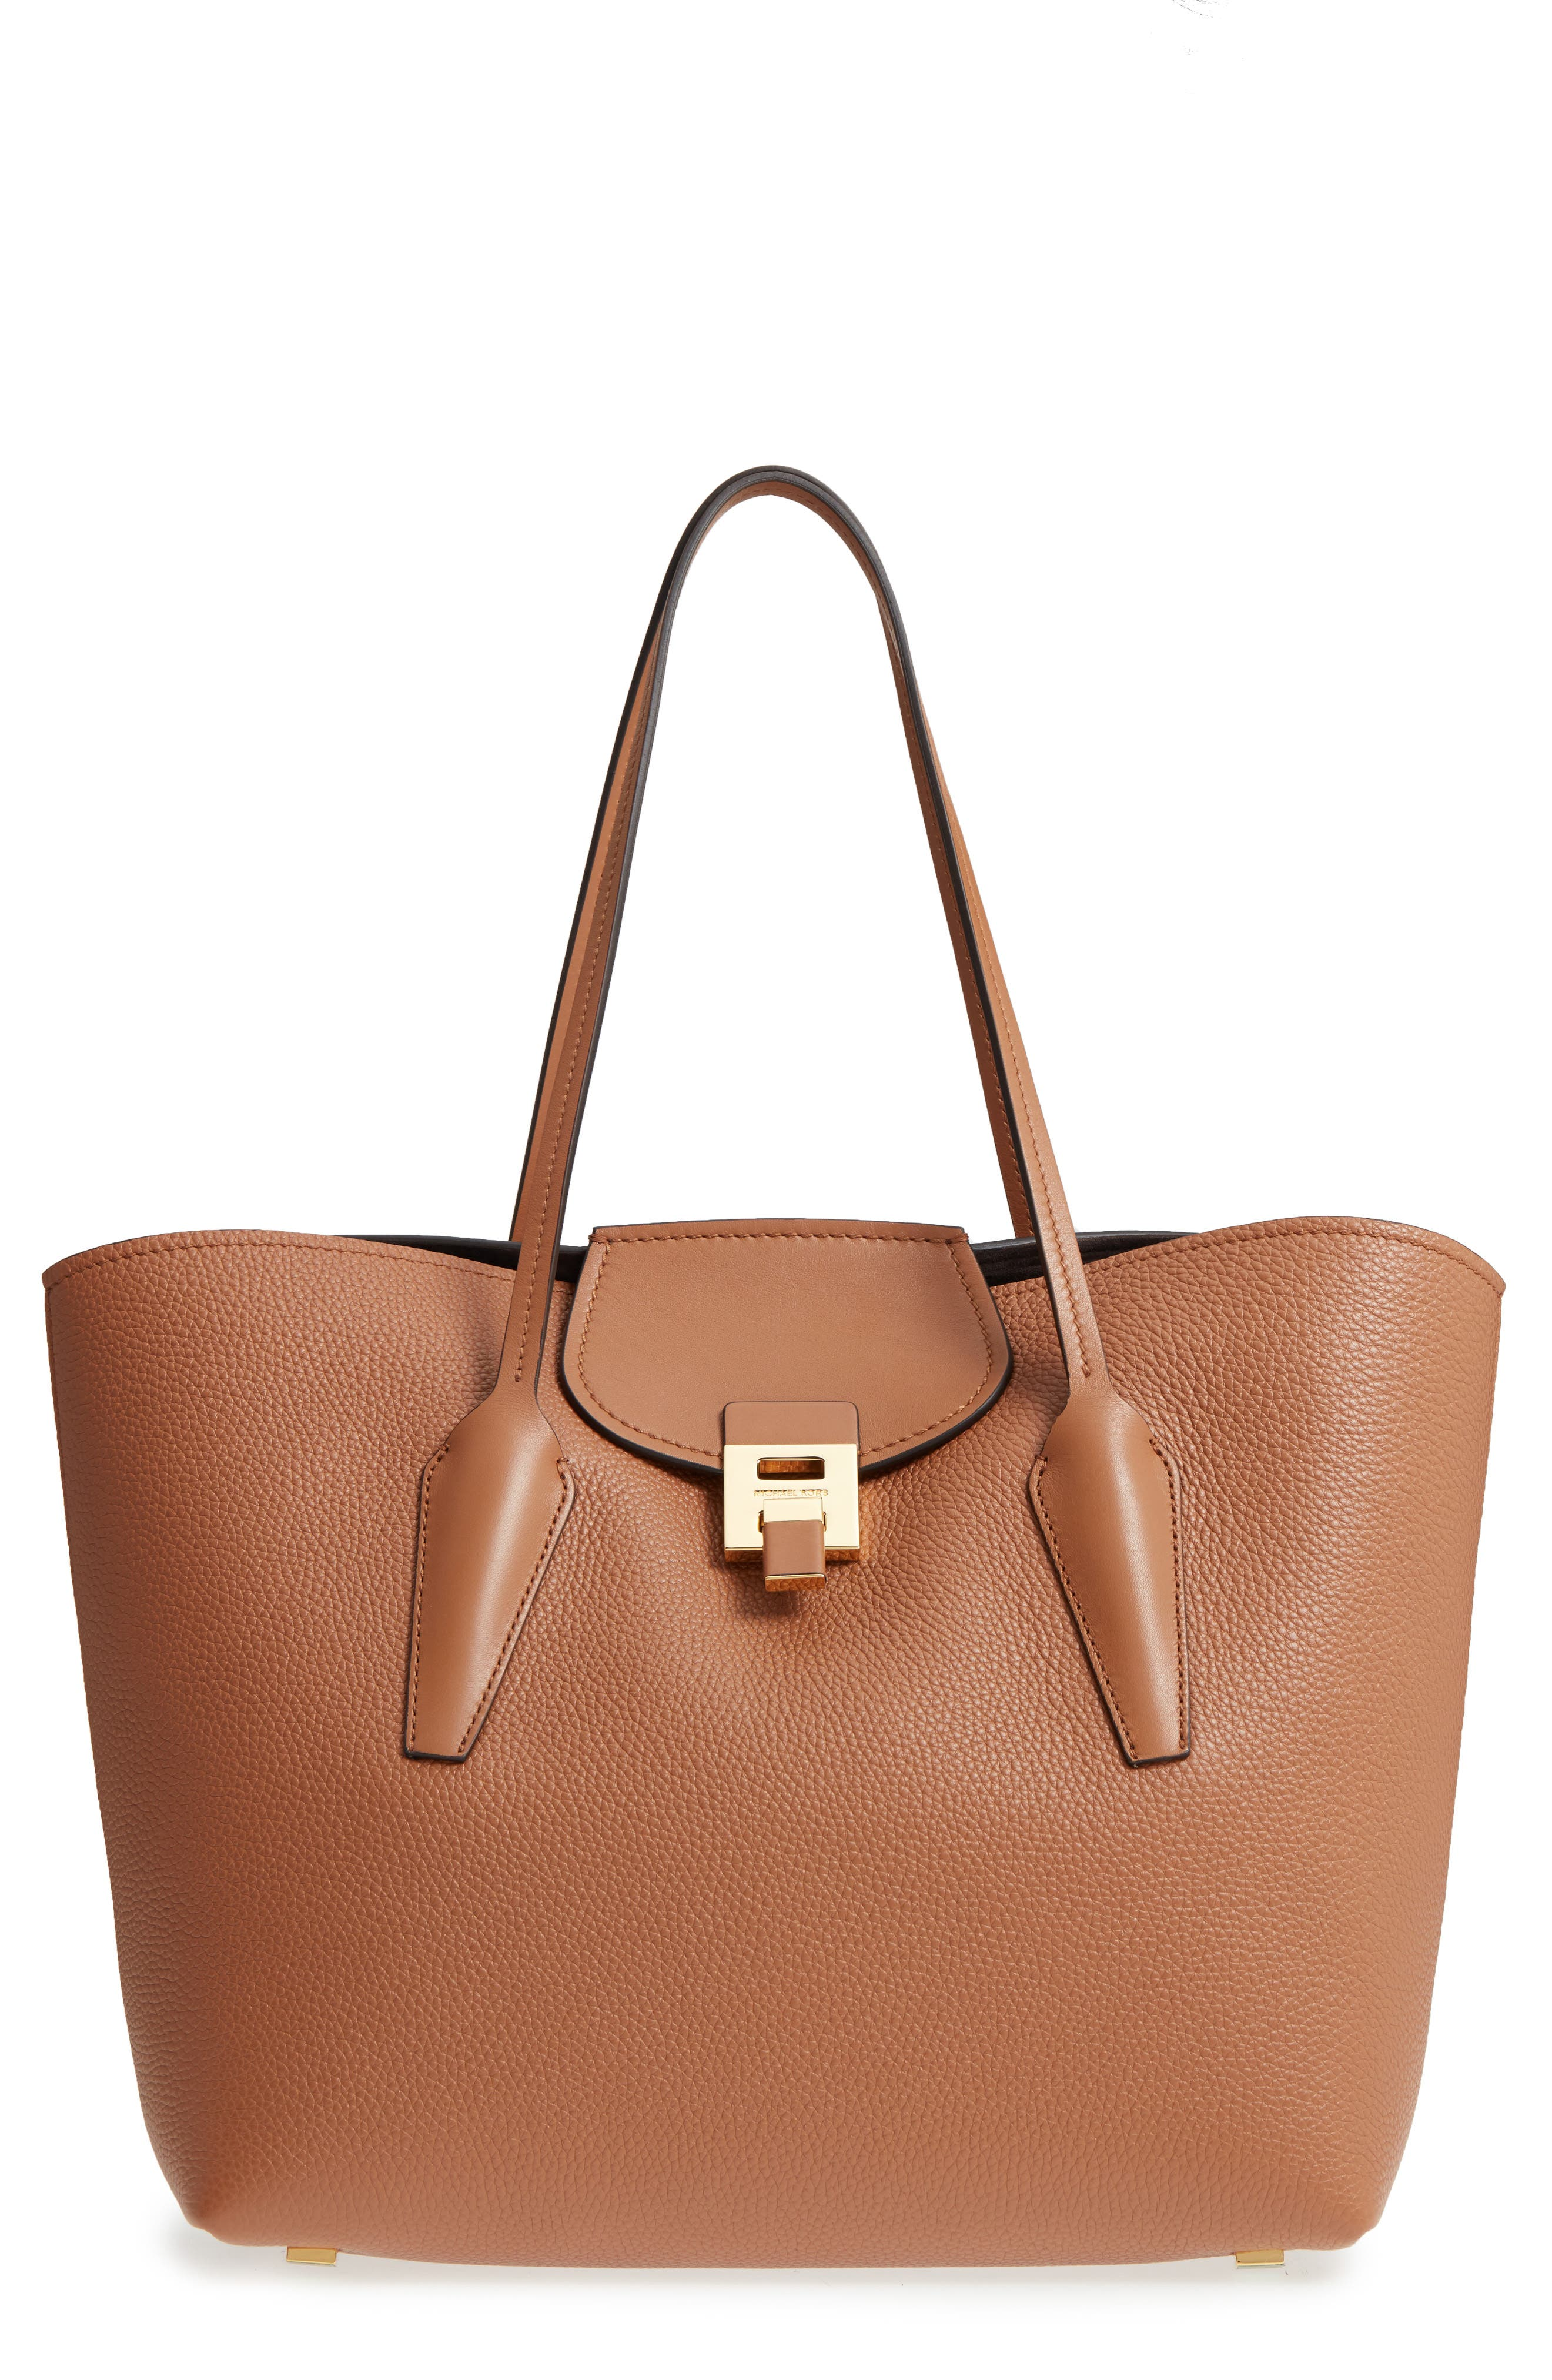 Michael Kors Large Bancroft Leather Tote